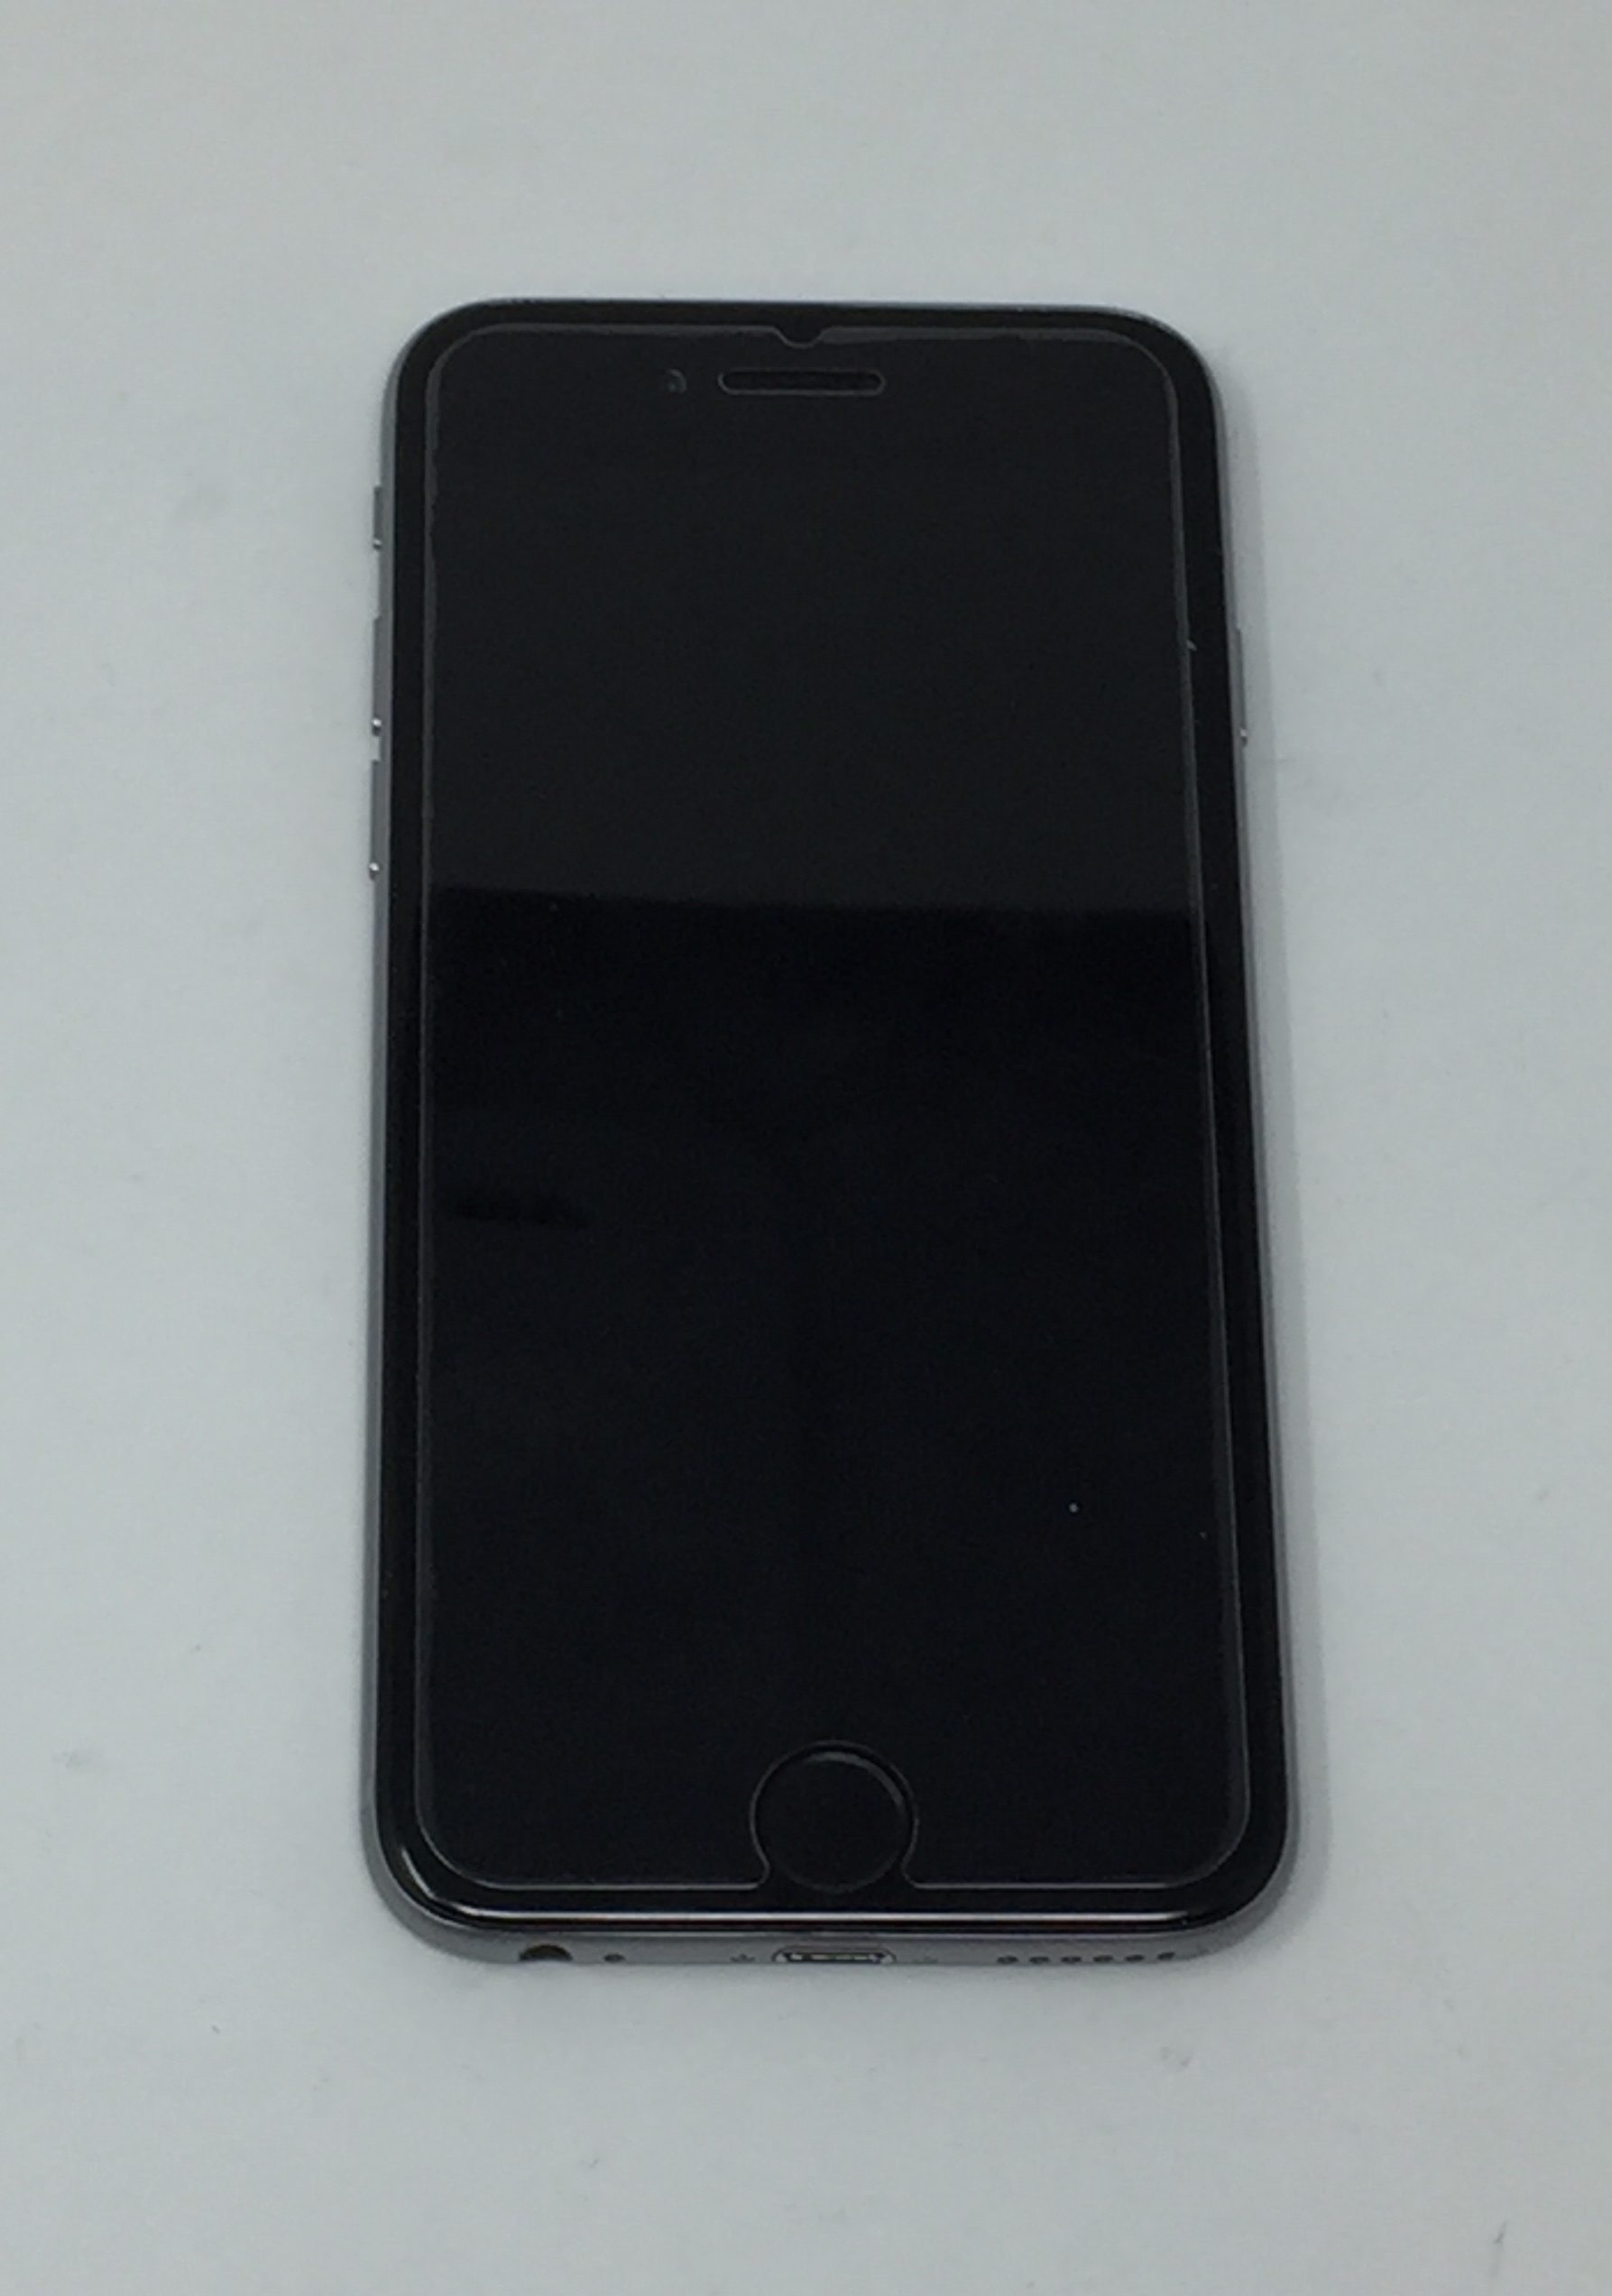 iPhone 6 32GB, 32 GB, GRAY, Afbeelding 1